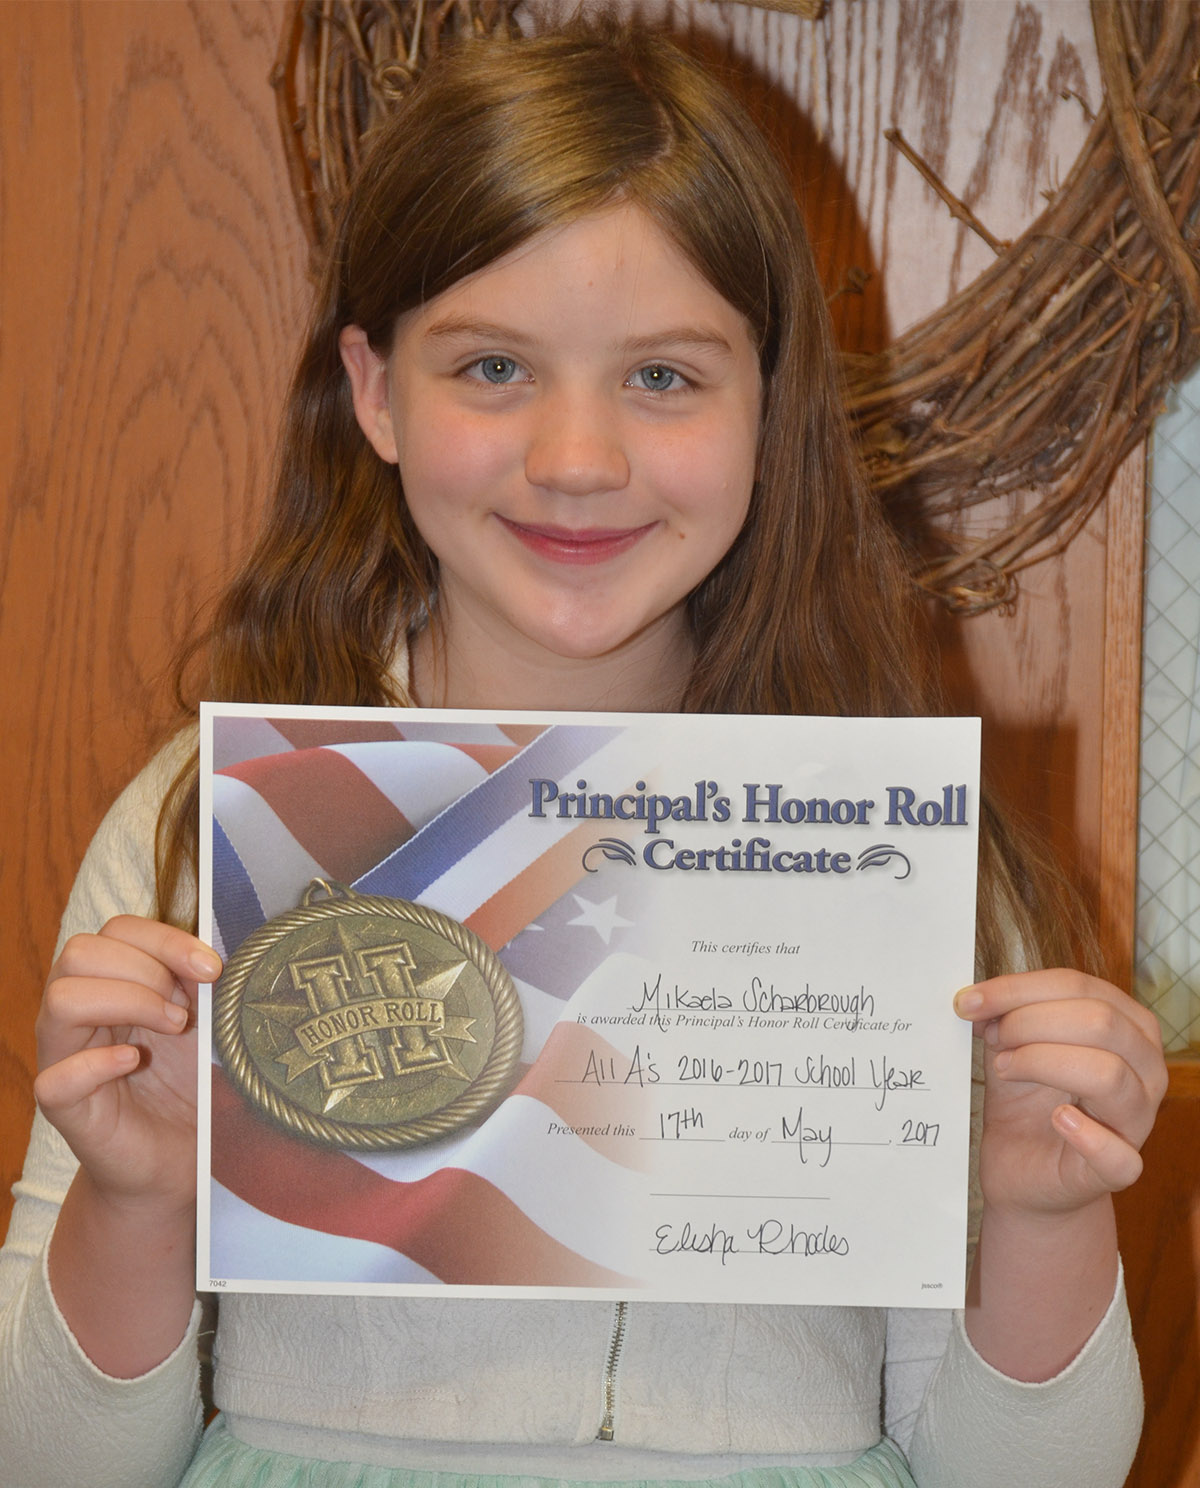 Sixth-grader Mikaela Scharbrough received a principal's honor roll award.